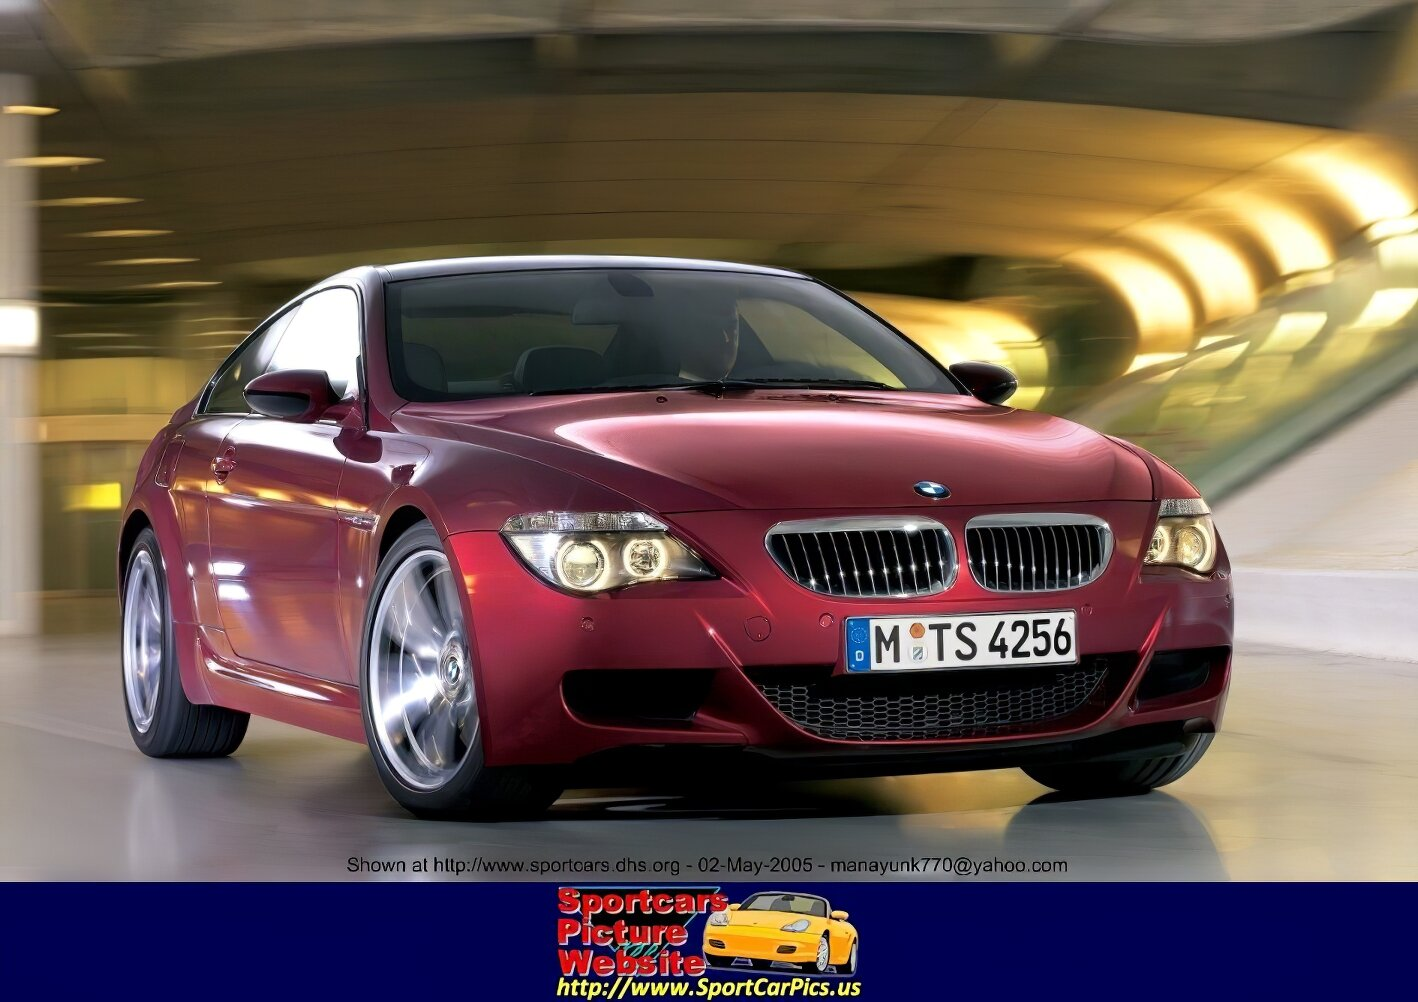 2006 BMW M6 Base price: $85,000 (est.) Engine: 5.0 liter V-10, 507 hp/384 lb-ft Transmission: Sequential seven-speed DSG semi-automatic, rear-wheel drive Length x width x height: 191.7 x 73.2 x 53.9 in Wheelbase: 113.0 in Curb weight: 3770 lb Fuel economy (EPA city/hwy): N/A Safety equipment: Dual front and side airbags, anti-lock brakes, stability control, stability control, traction control Major standard features: Automatic climate control, power windows/mirrors/locks, electric rear defroster, 19-inch wheels, cruise control, tilt/telescoping steering wheel, CD changer/MP3 player Warranty: Four years/50,000 miles - BMW M6 - ID: 12444